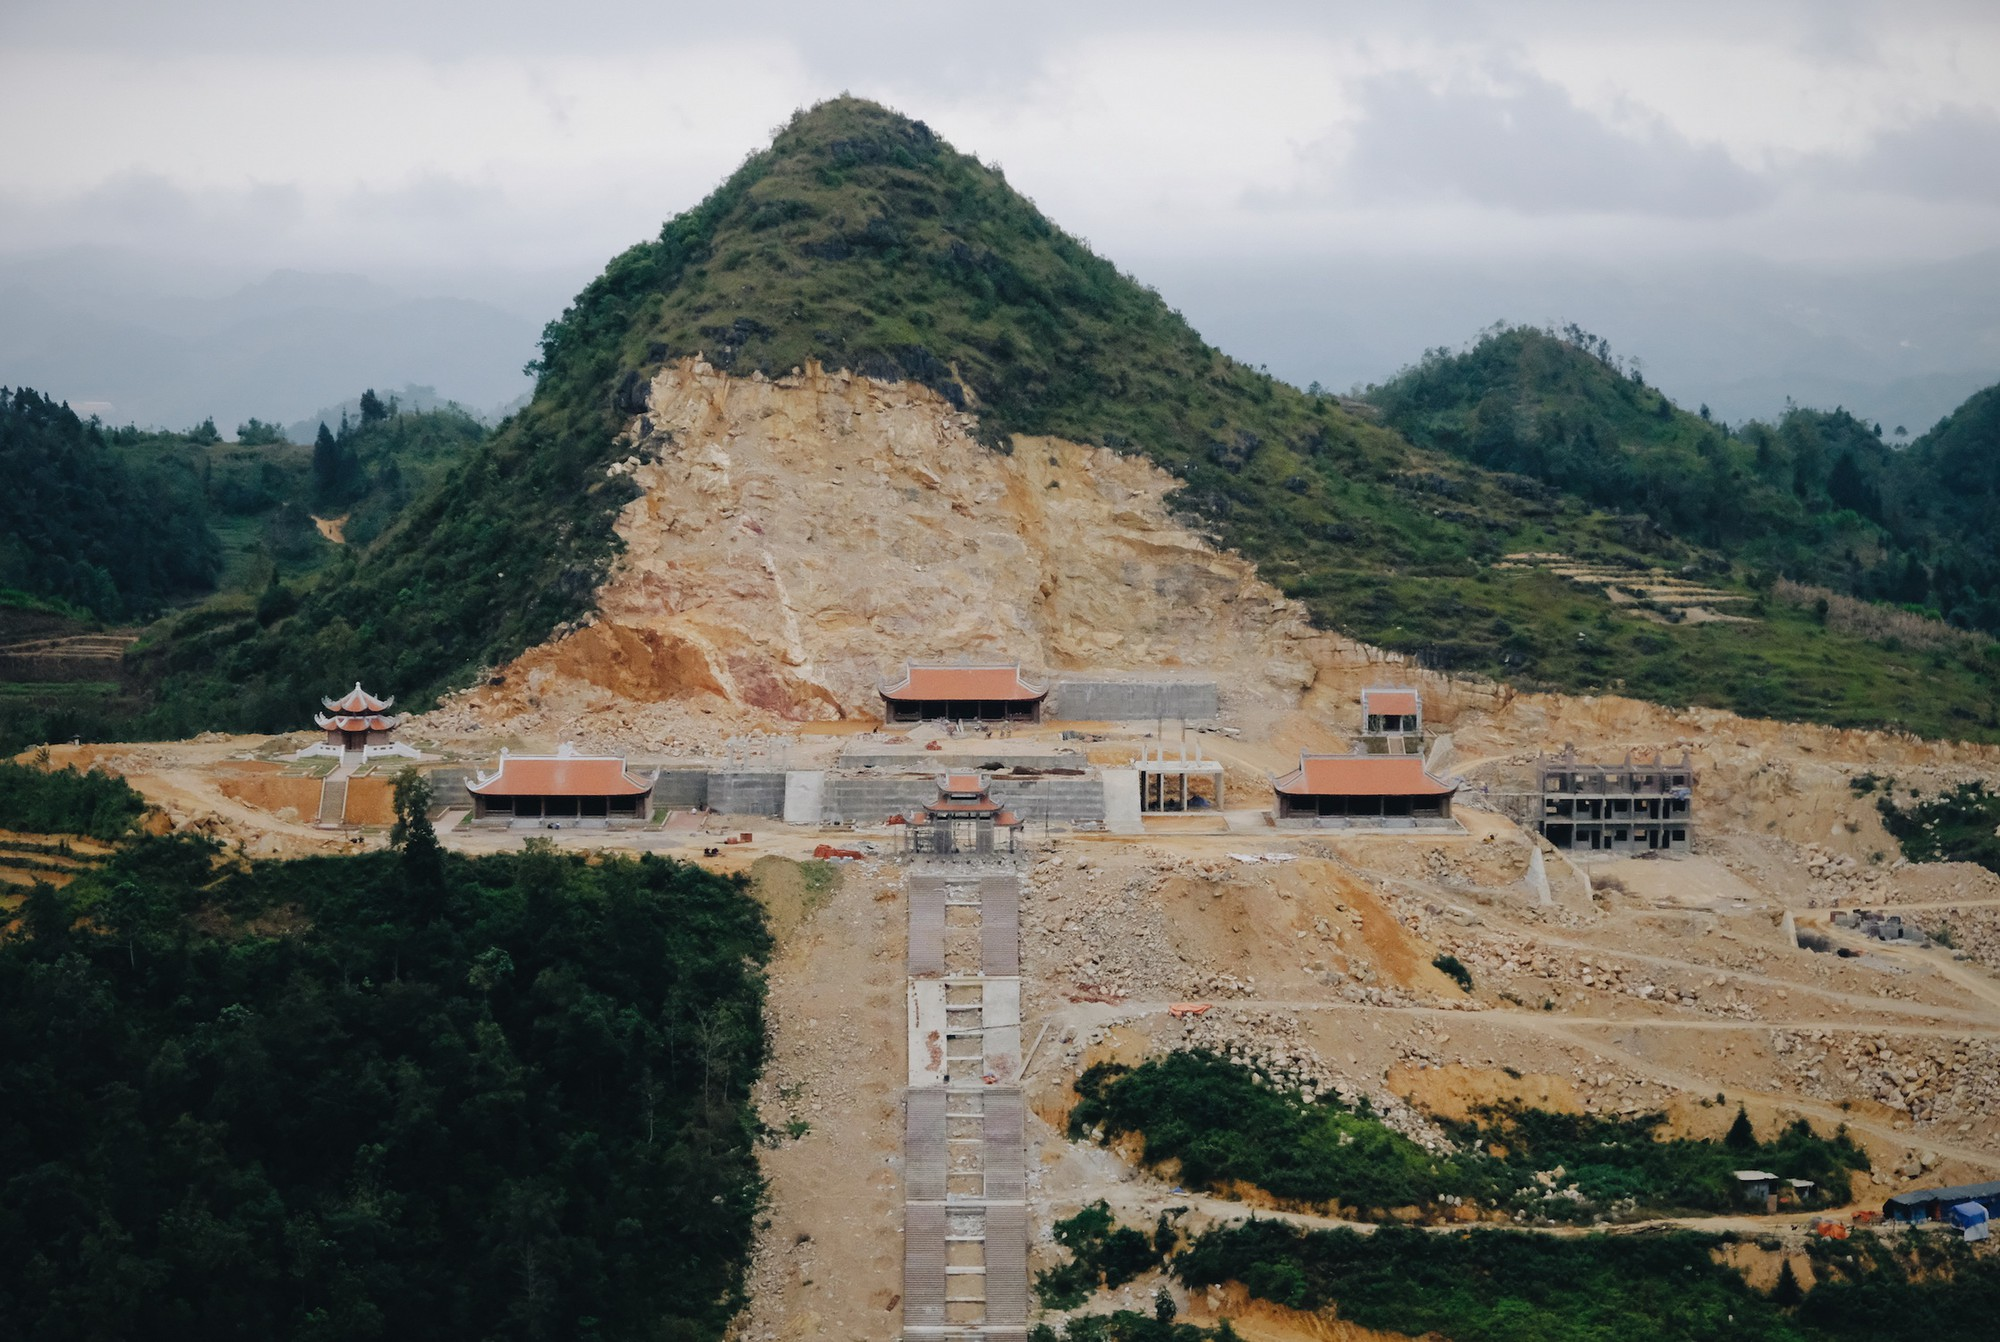 Mountain flattened for tourism project near Vietnam's iconic flagpole